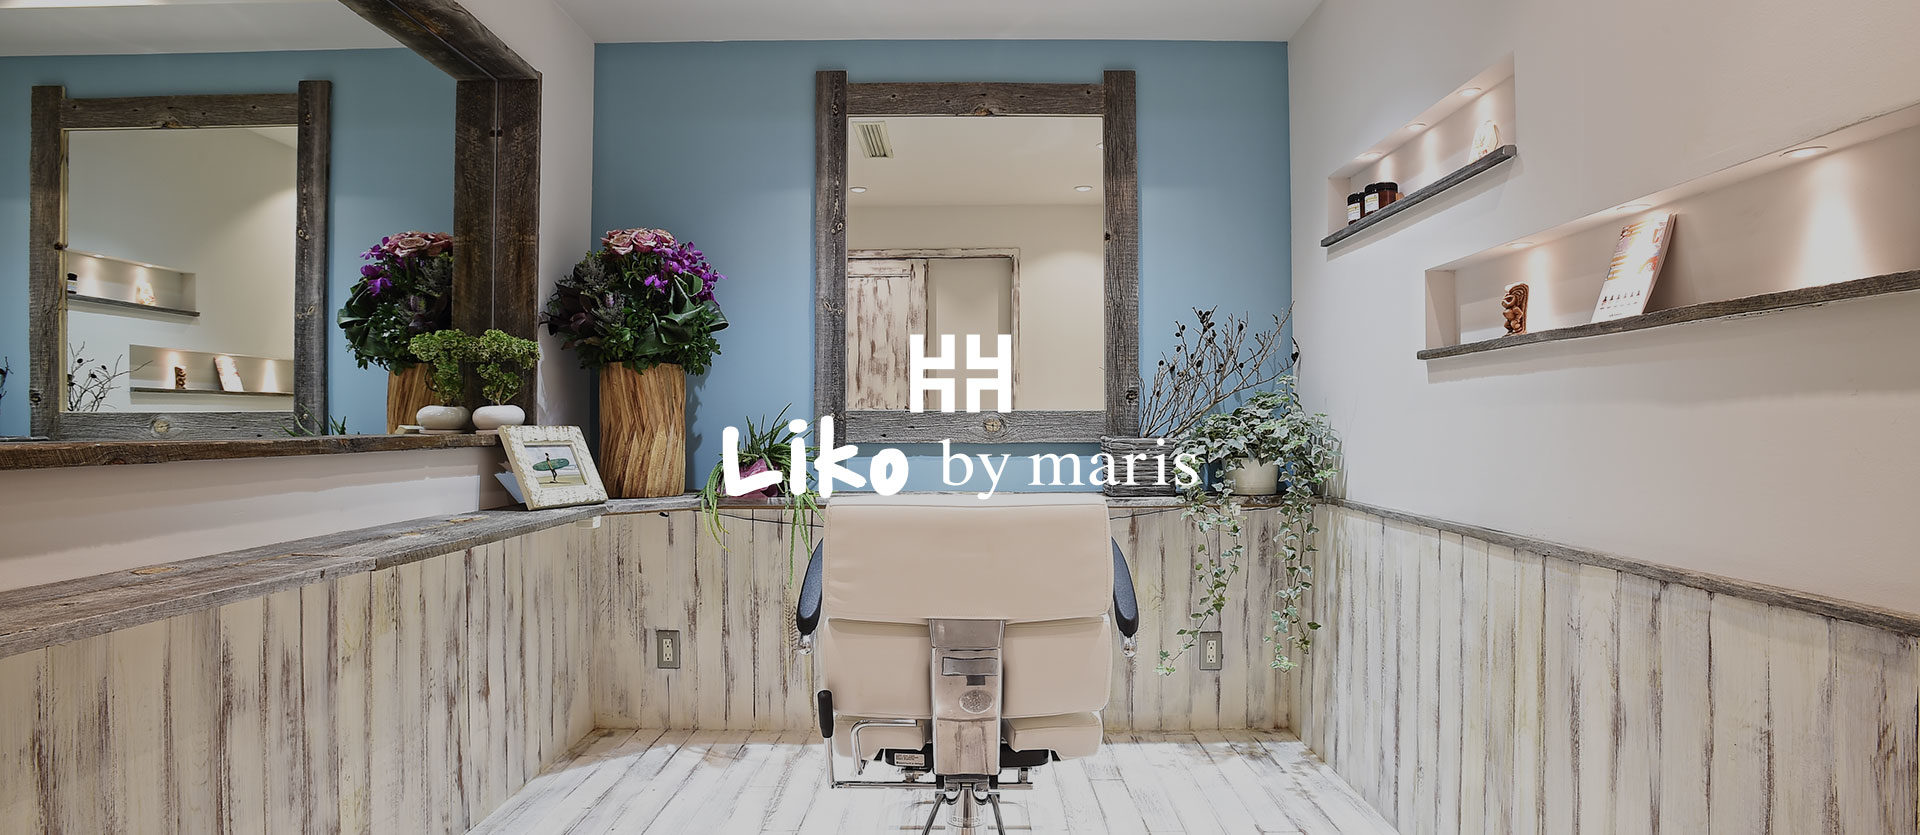 Liko by maris